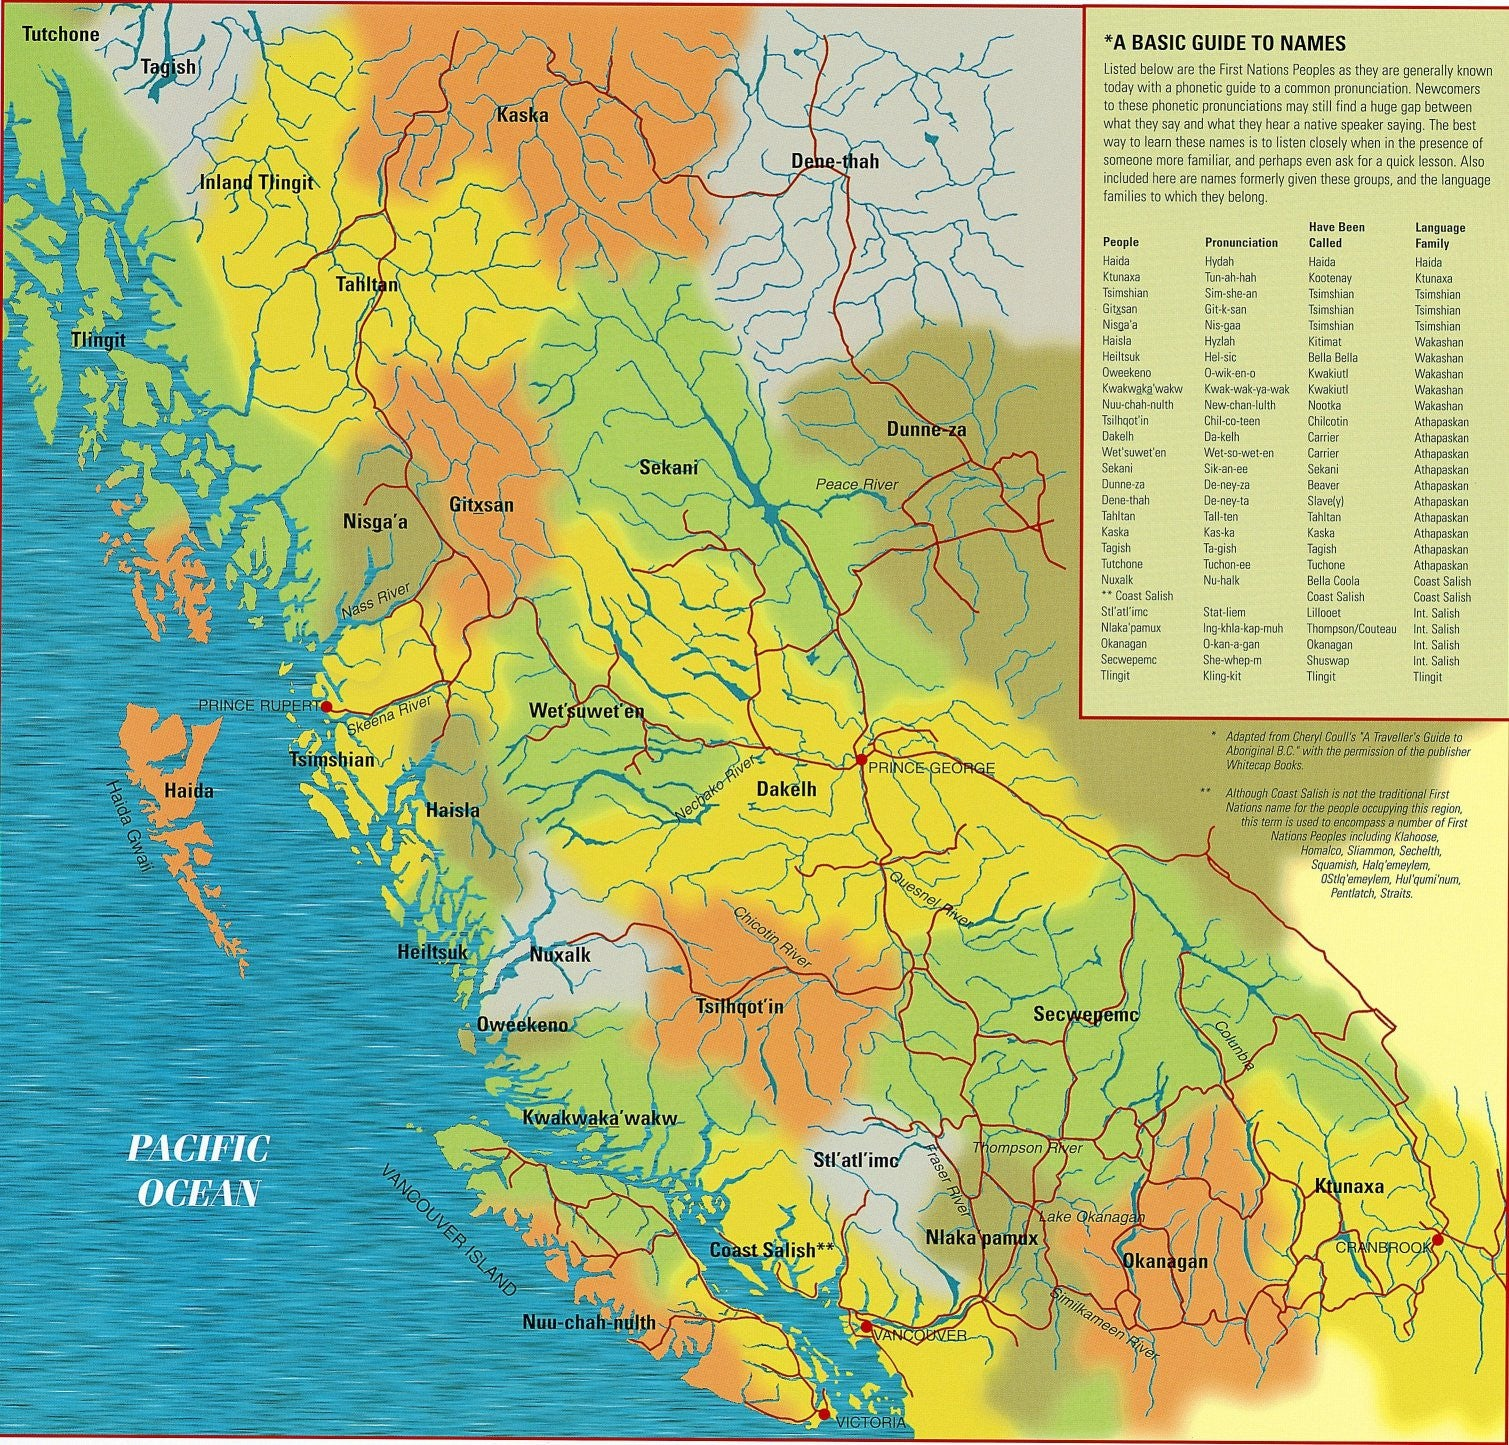 Canada First Nations Peoples of British Columbia Map North